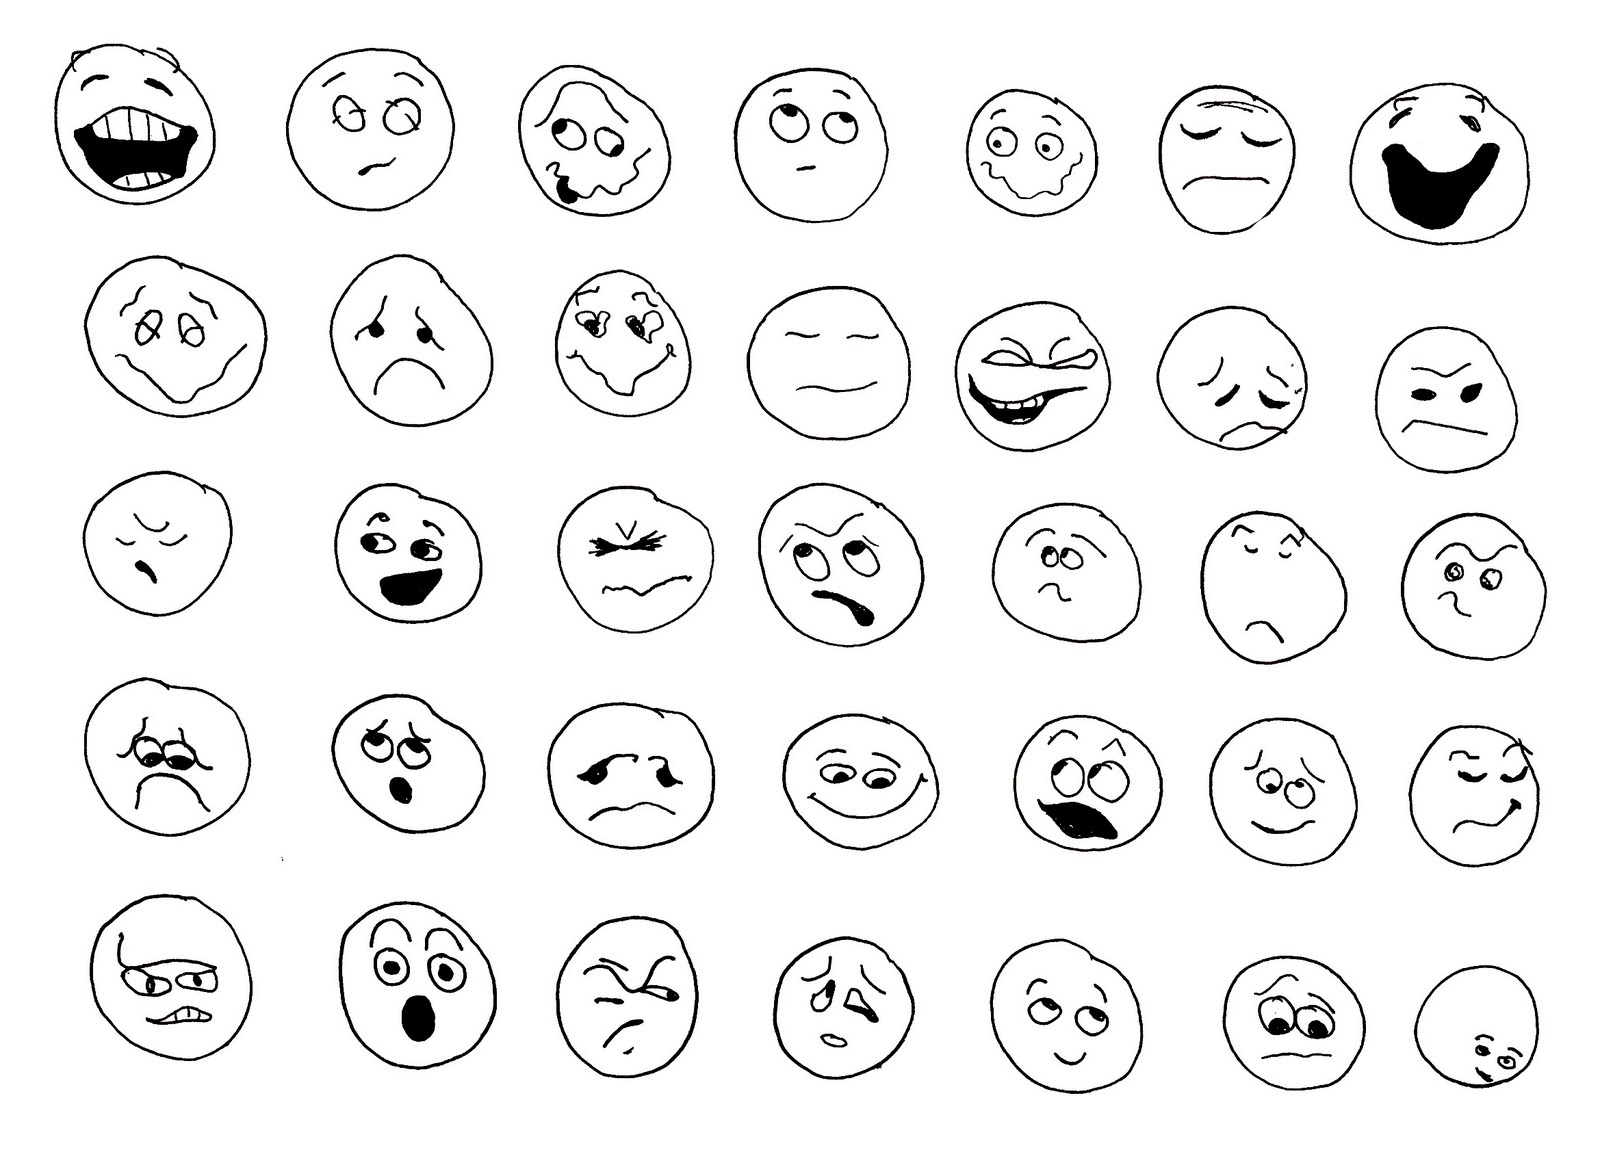 mood faces coloring pages - photo#26